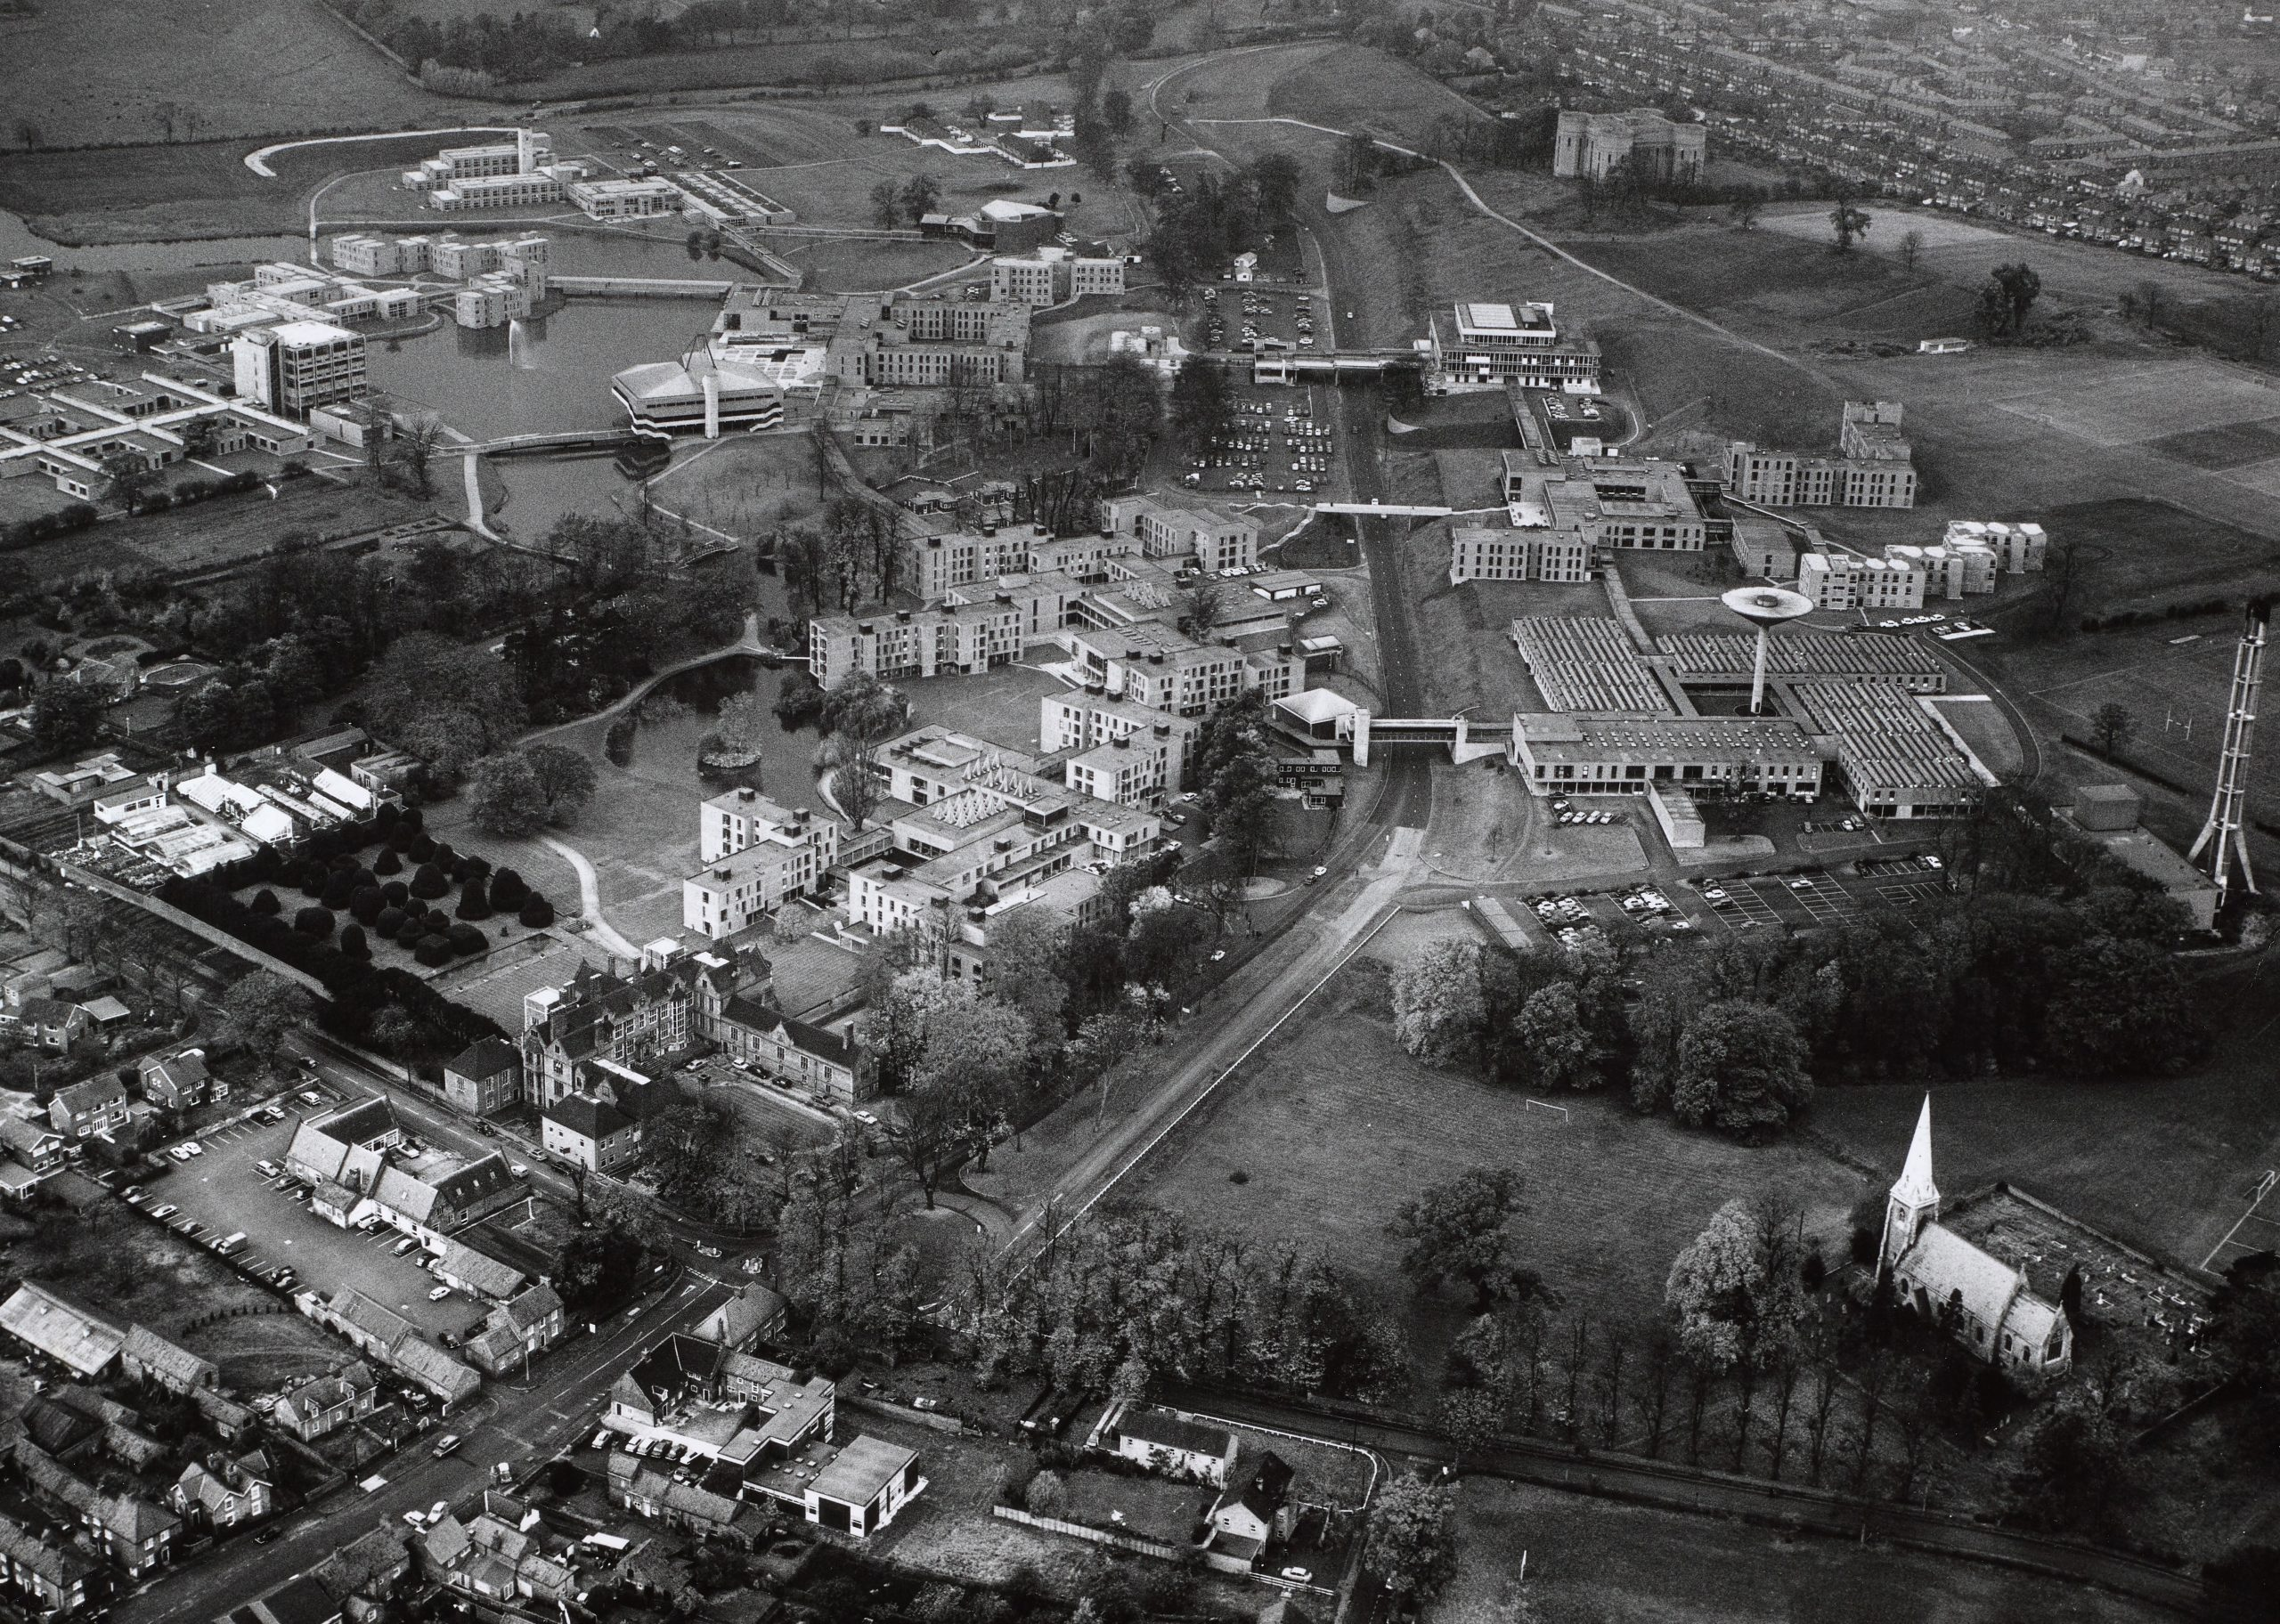 A black and white arial image of the University of York.